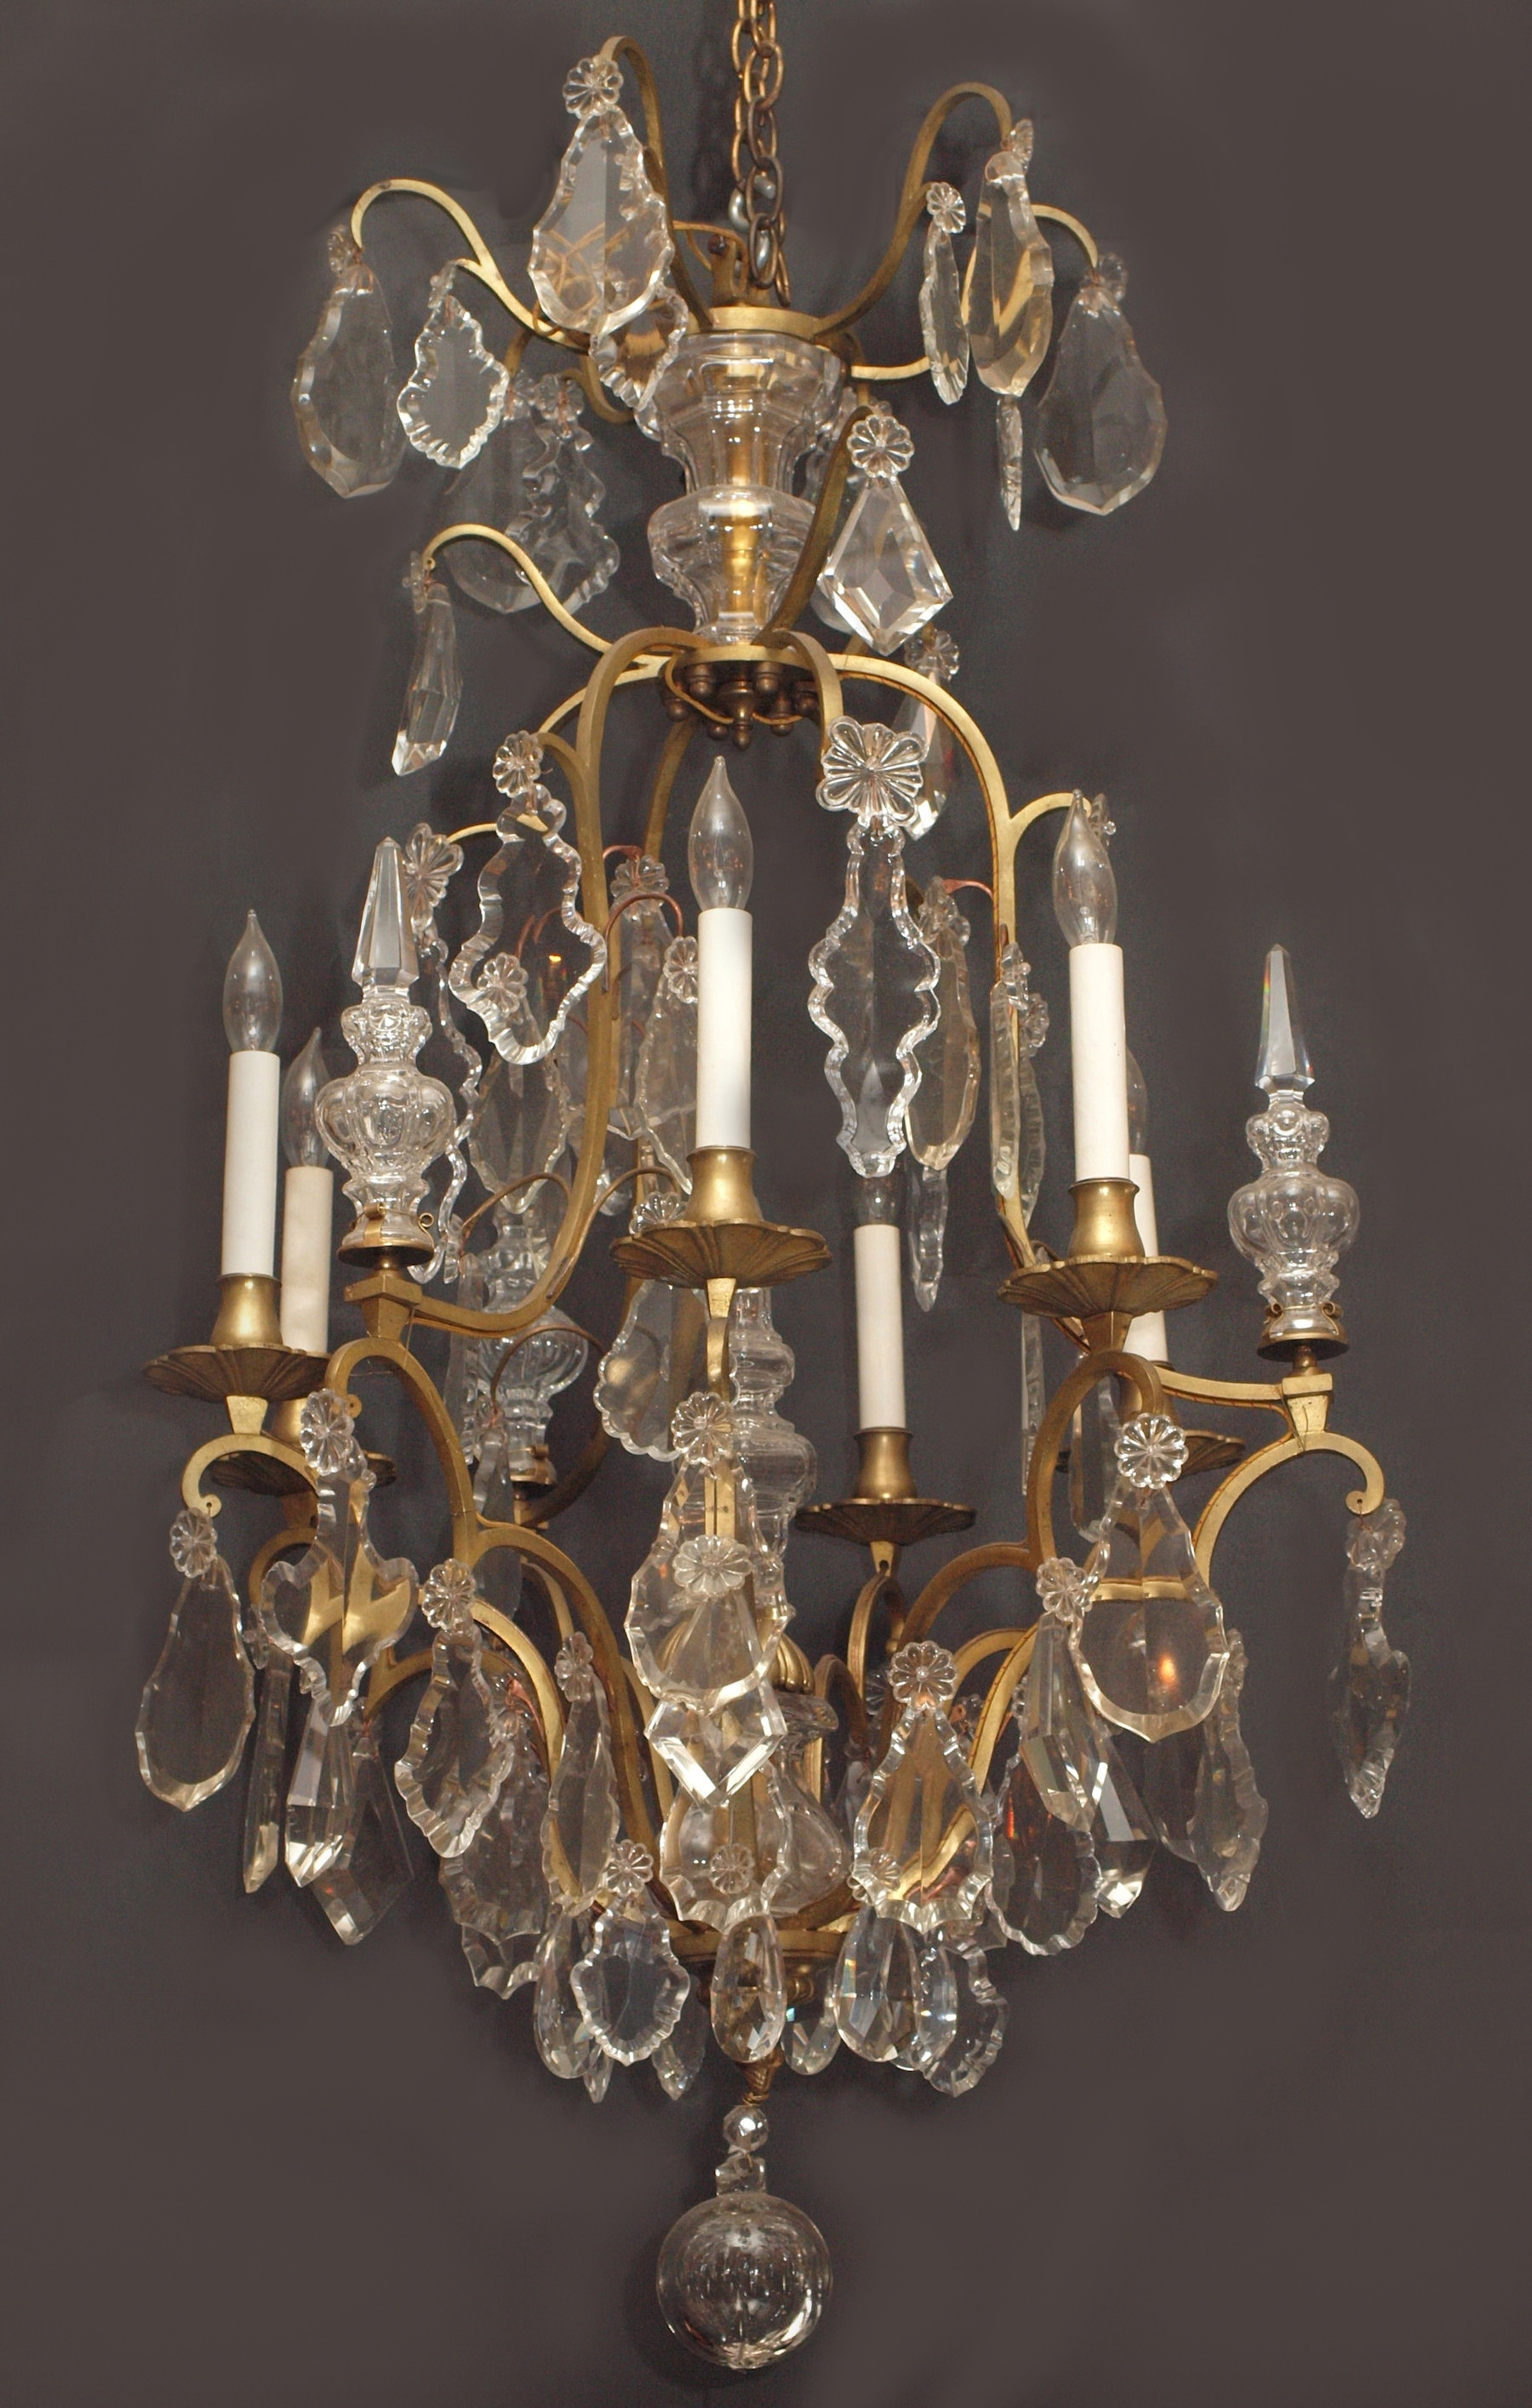 Vintage French Chandelier – Chandelier Designs For Well Known Antique French Chandeliers (View 14 of 15)